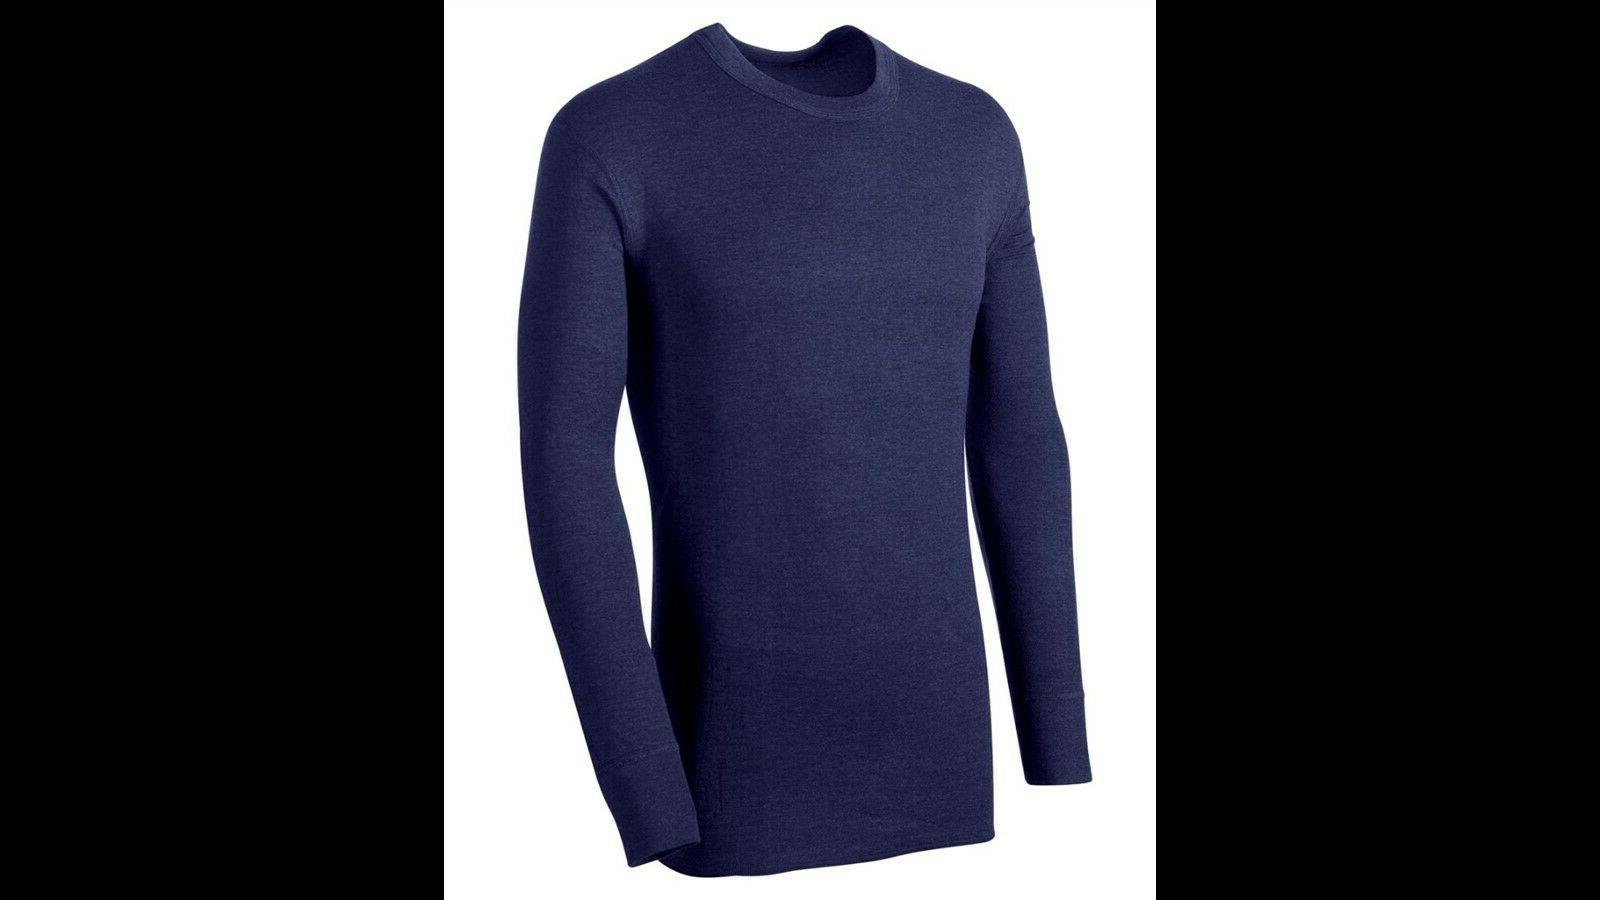 Duofold by KMW1 Thermals Men's Shirt